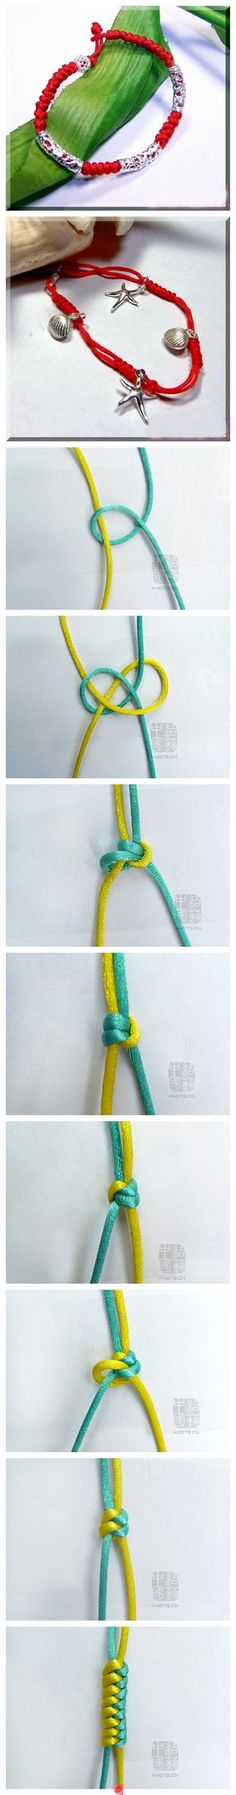 I havent done anything related to knotting in a while....going to try this!